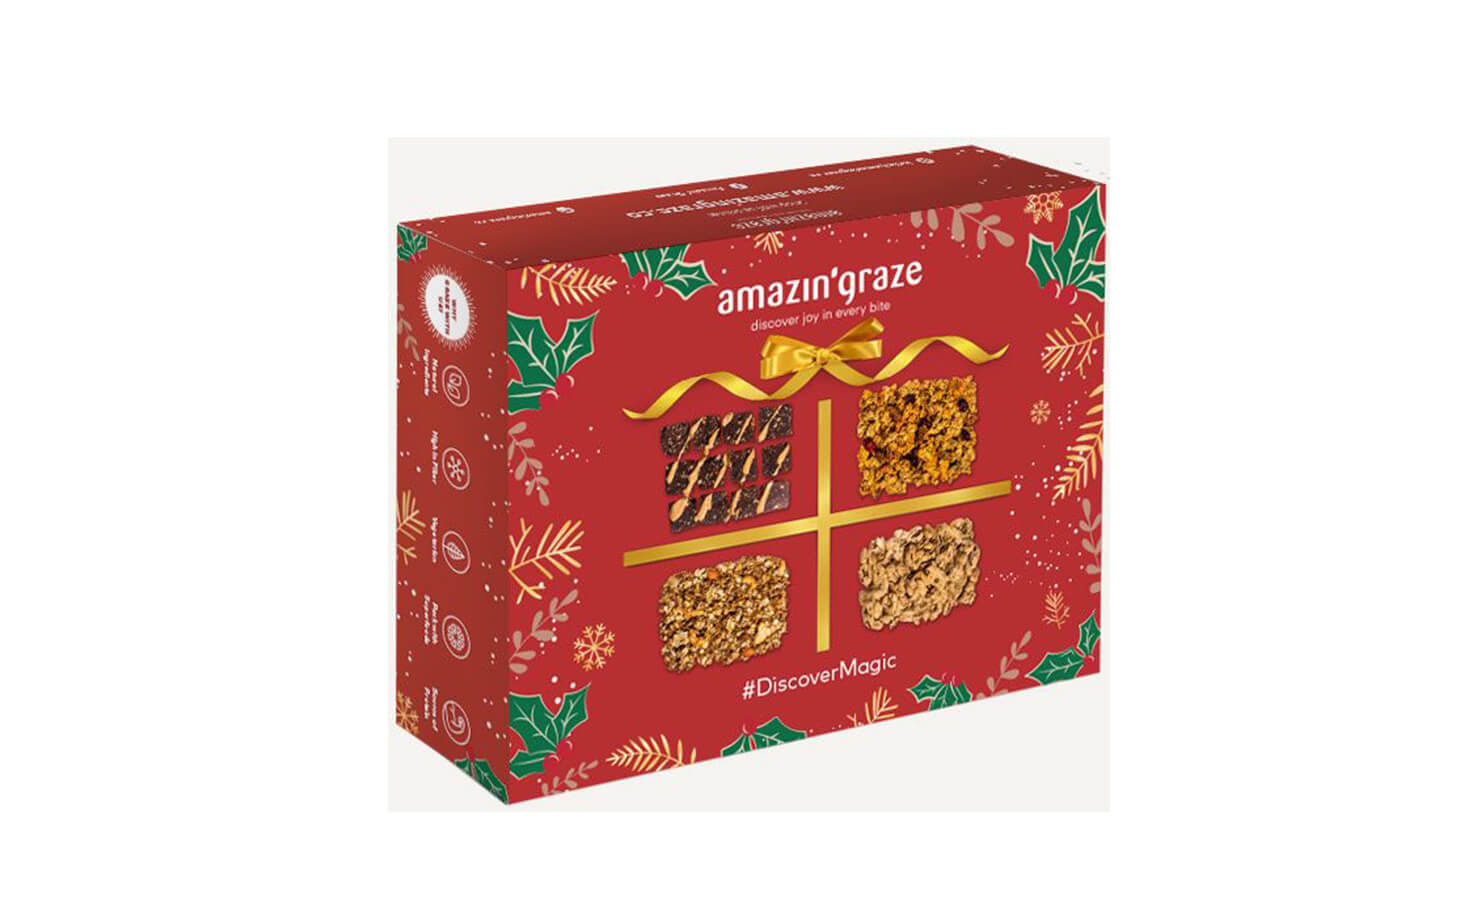 10-the-ultimate-list-of-christmas-gifts-in-malaysia-amazin-graze-deluxe-gift-set